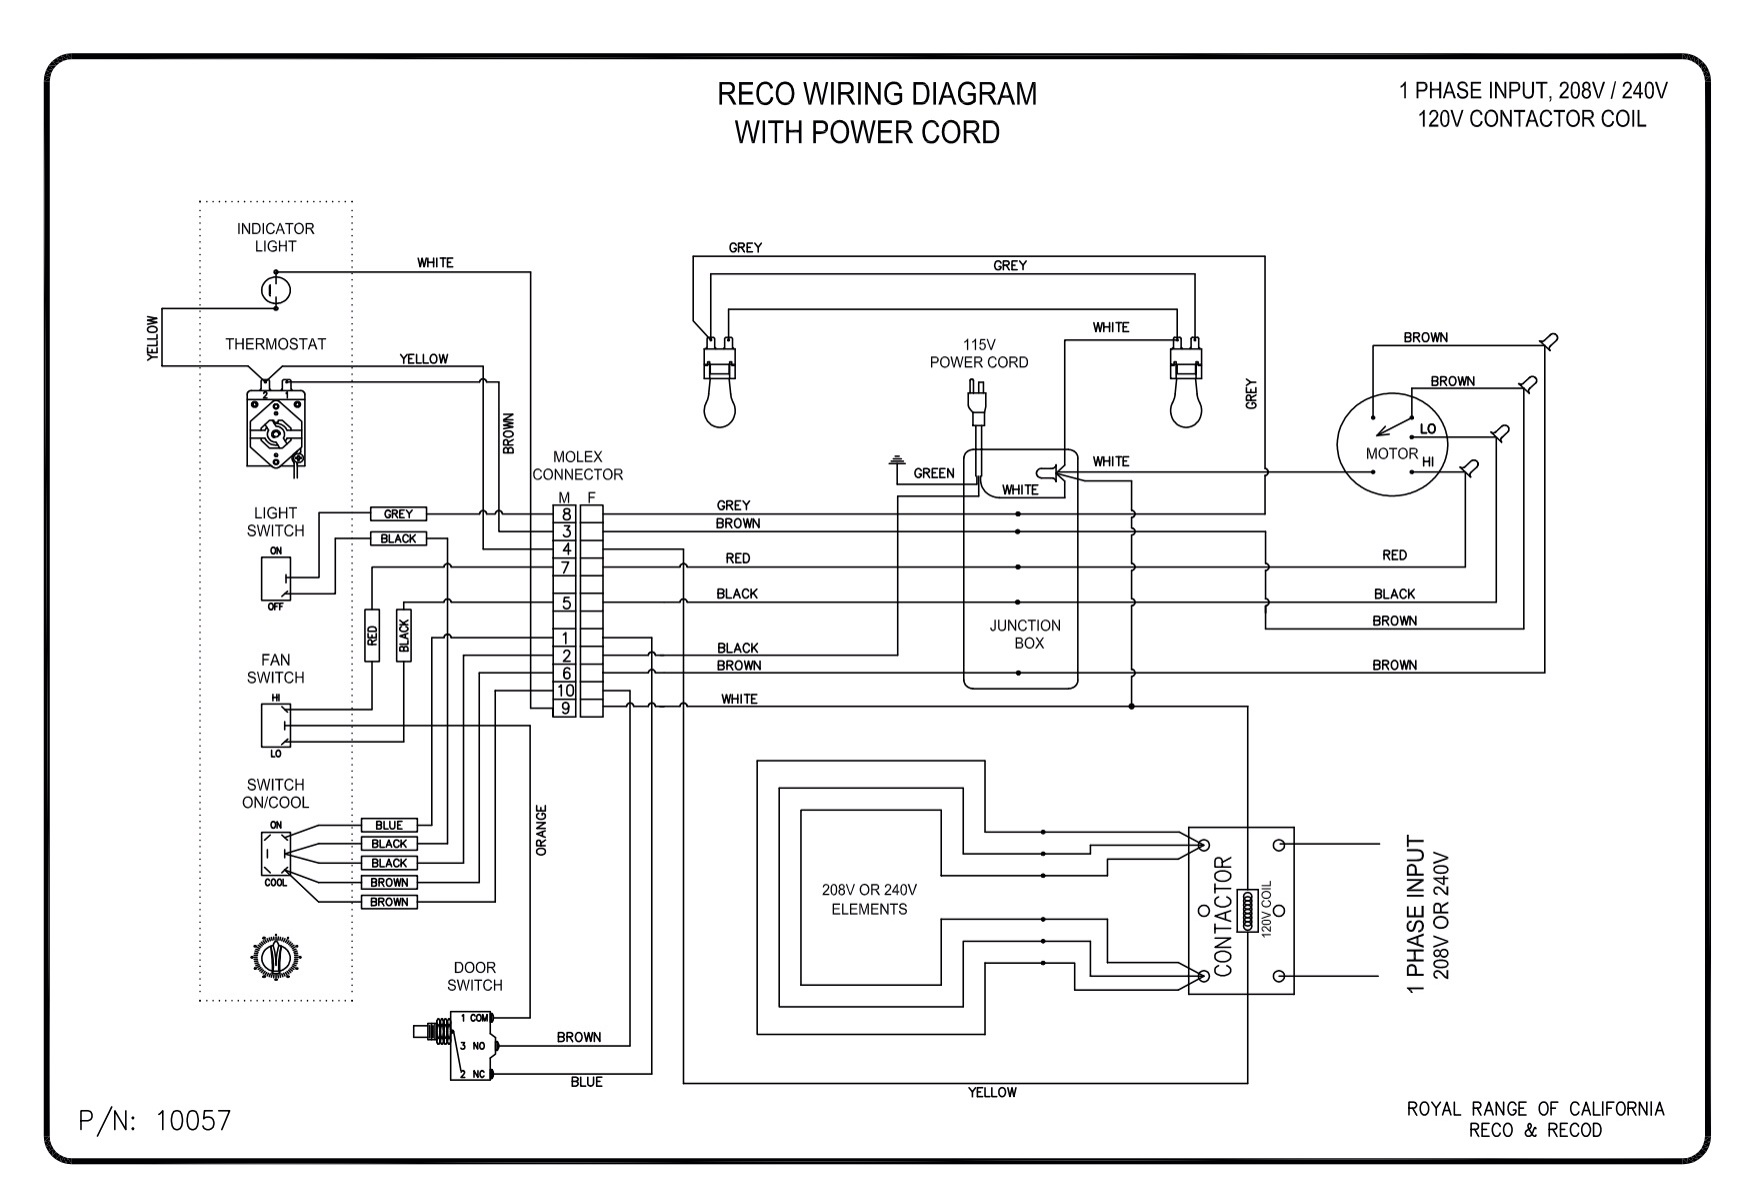 Caravan 240V Wiring Diagram from royalranges.com